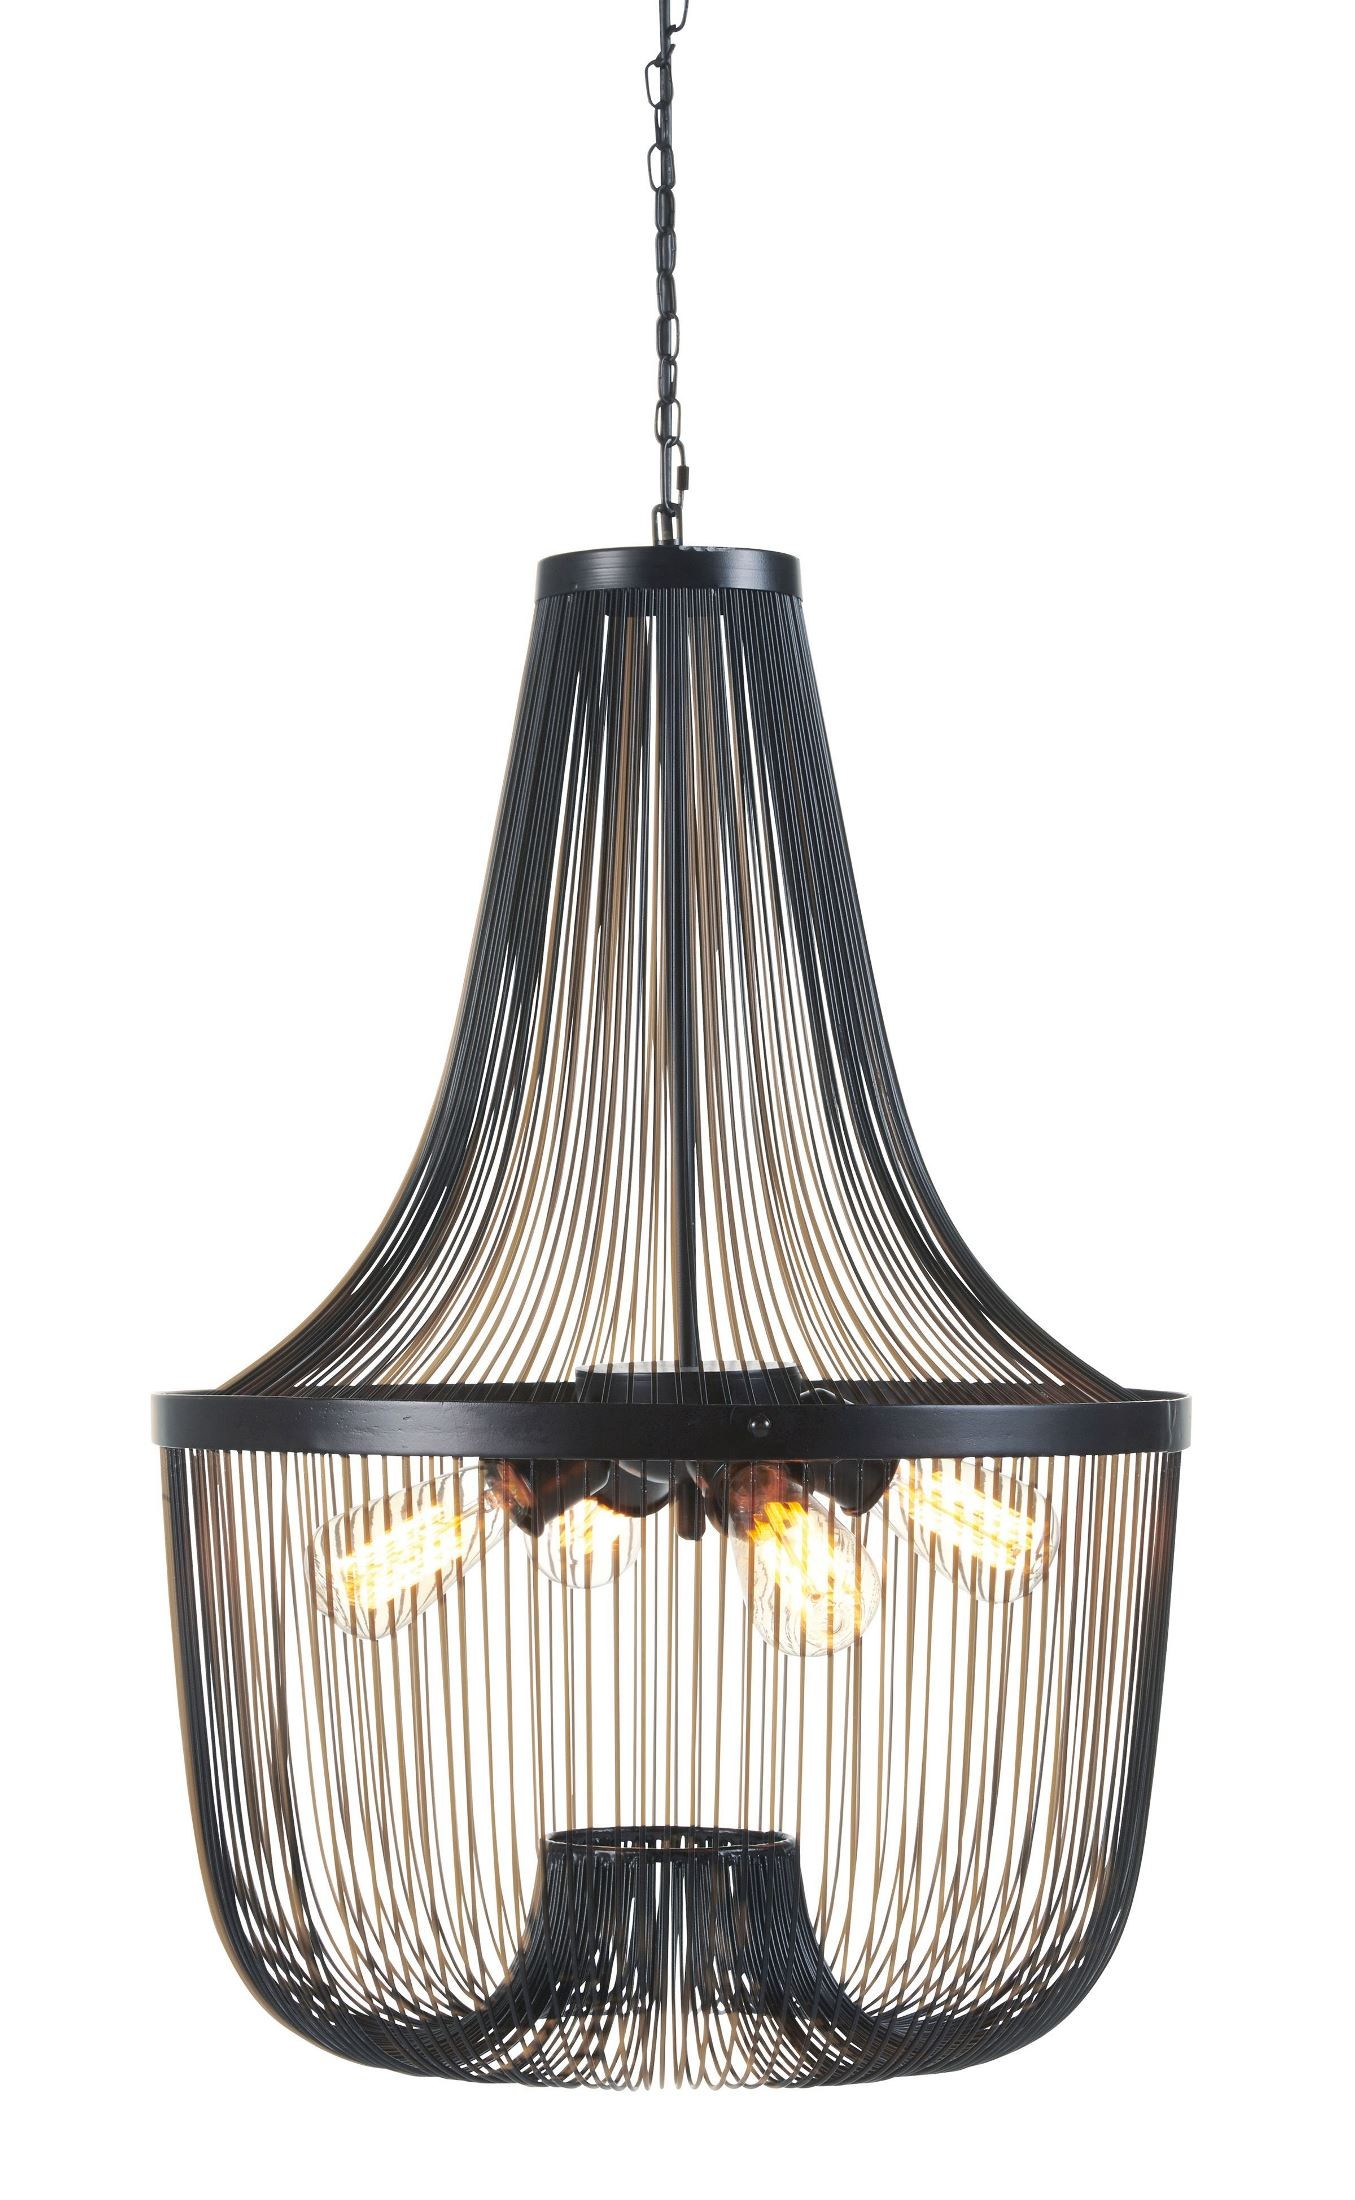 Jessika black metal pendant light l000568 ashley for Metal hanging lights